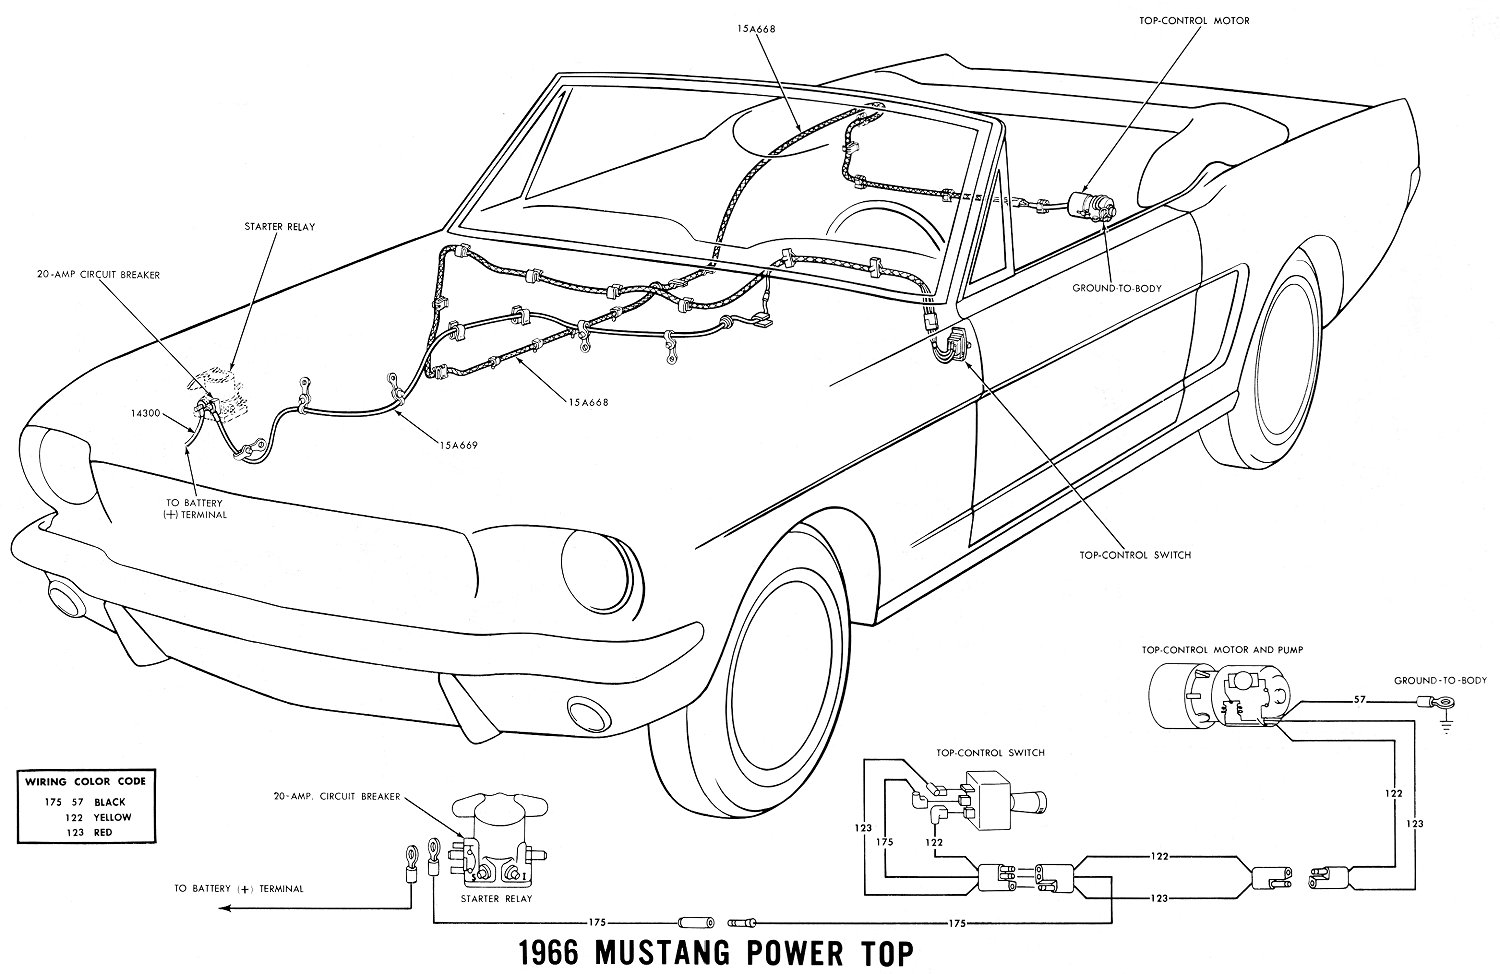 66pwrtop vintage mustang wiring diagrams 1966 mustang fuse box diagram at bayanpartner.co